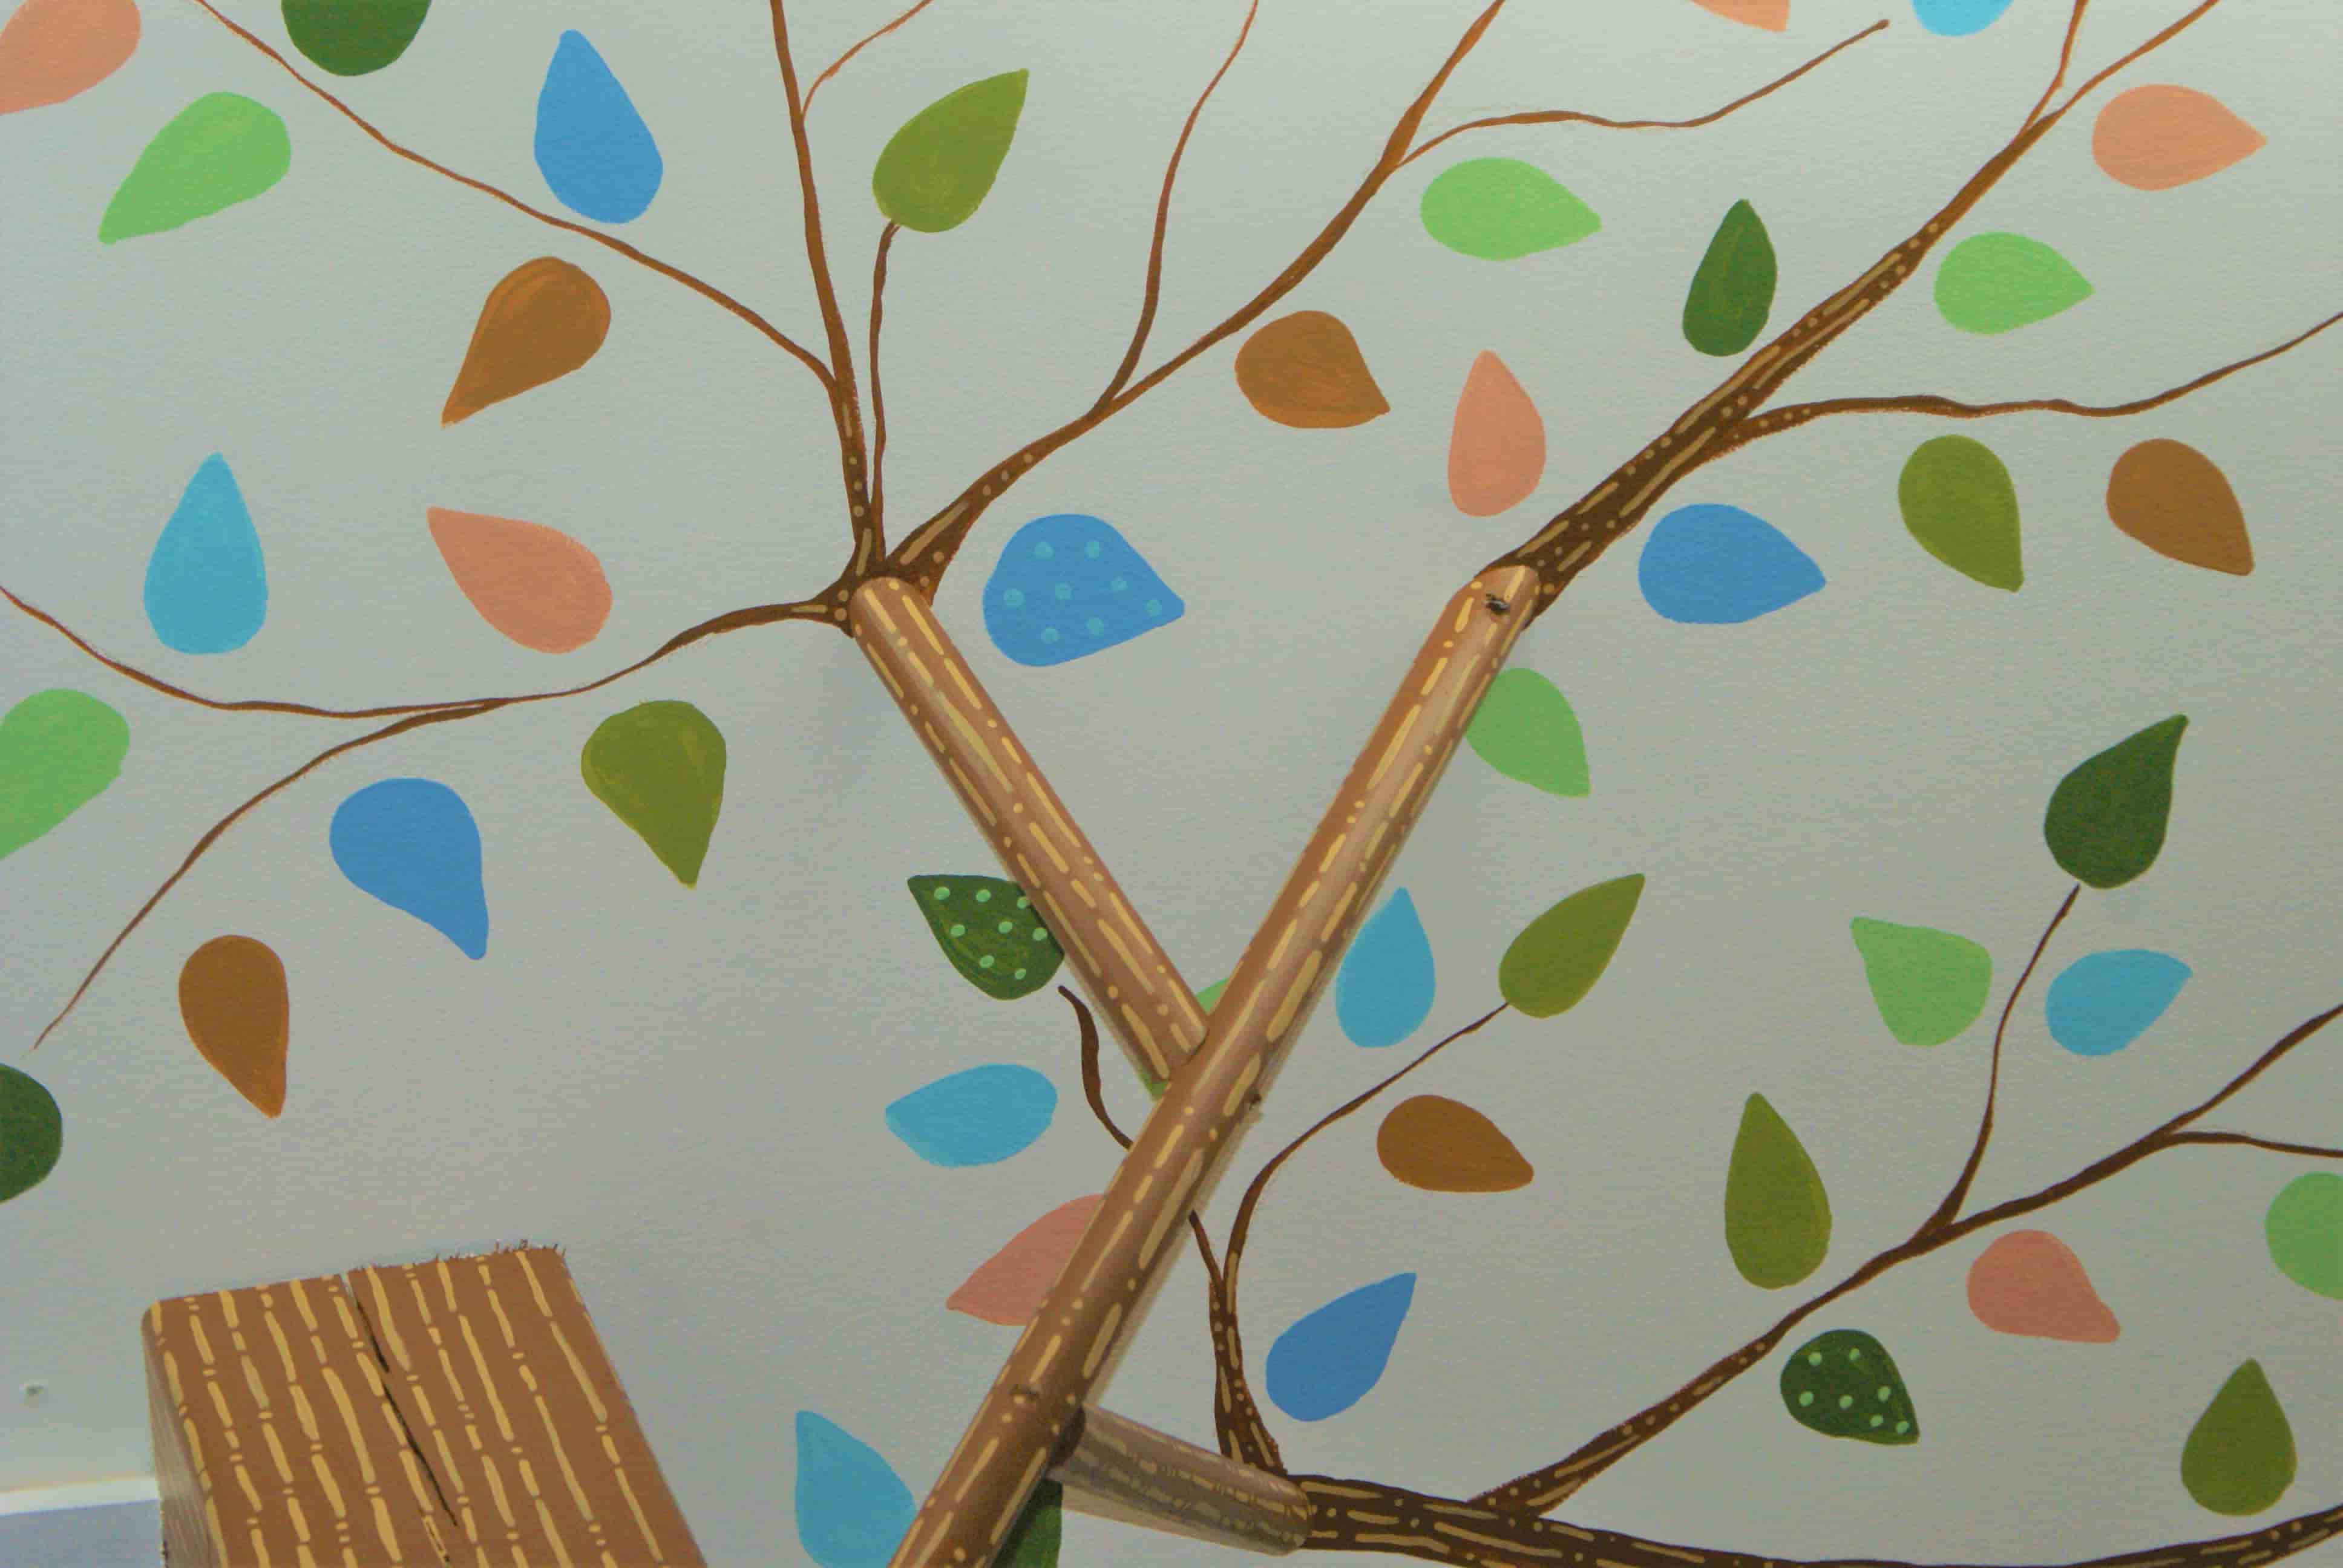 Hand-painted leaves on a ceiling by mural painter Adrienne Scanlan